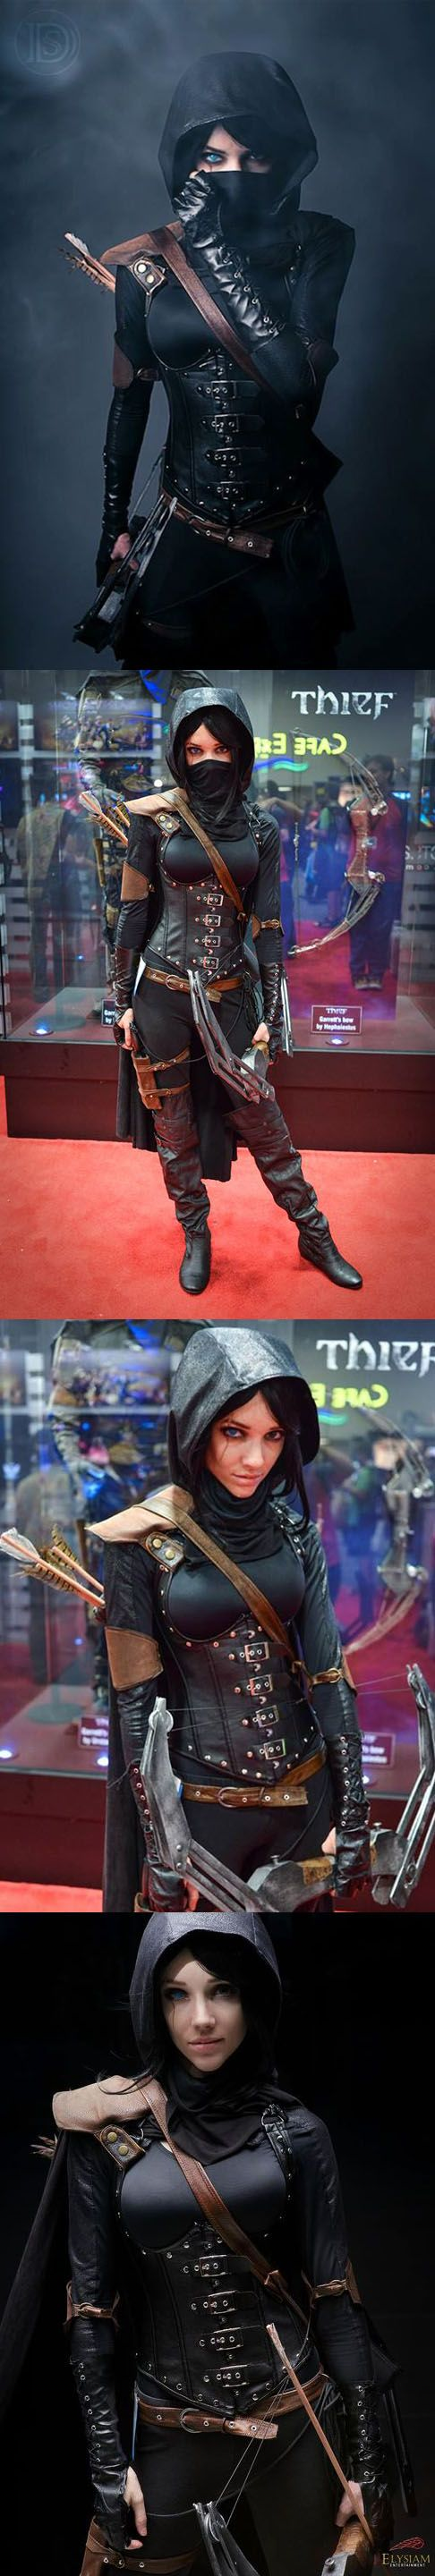 Thief cosplay. Best ever.